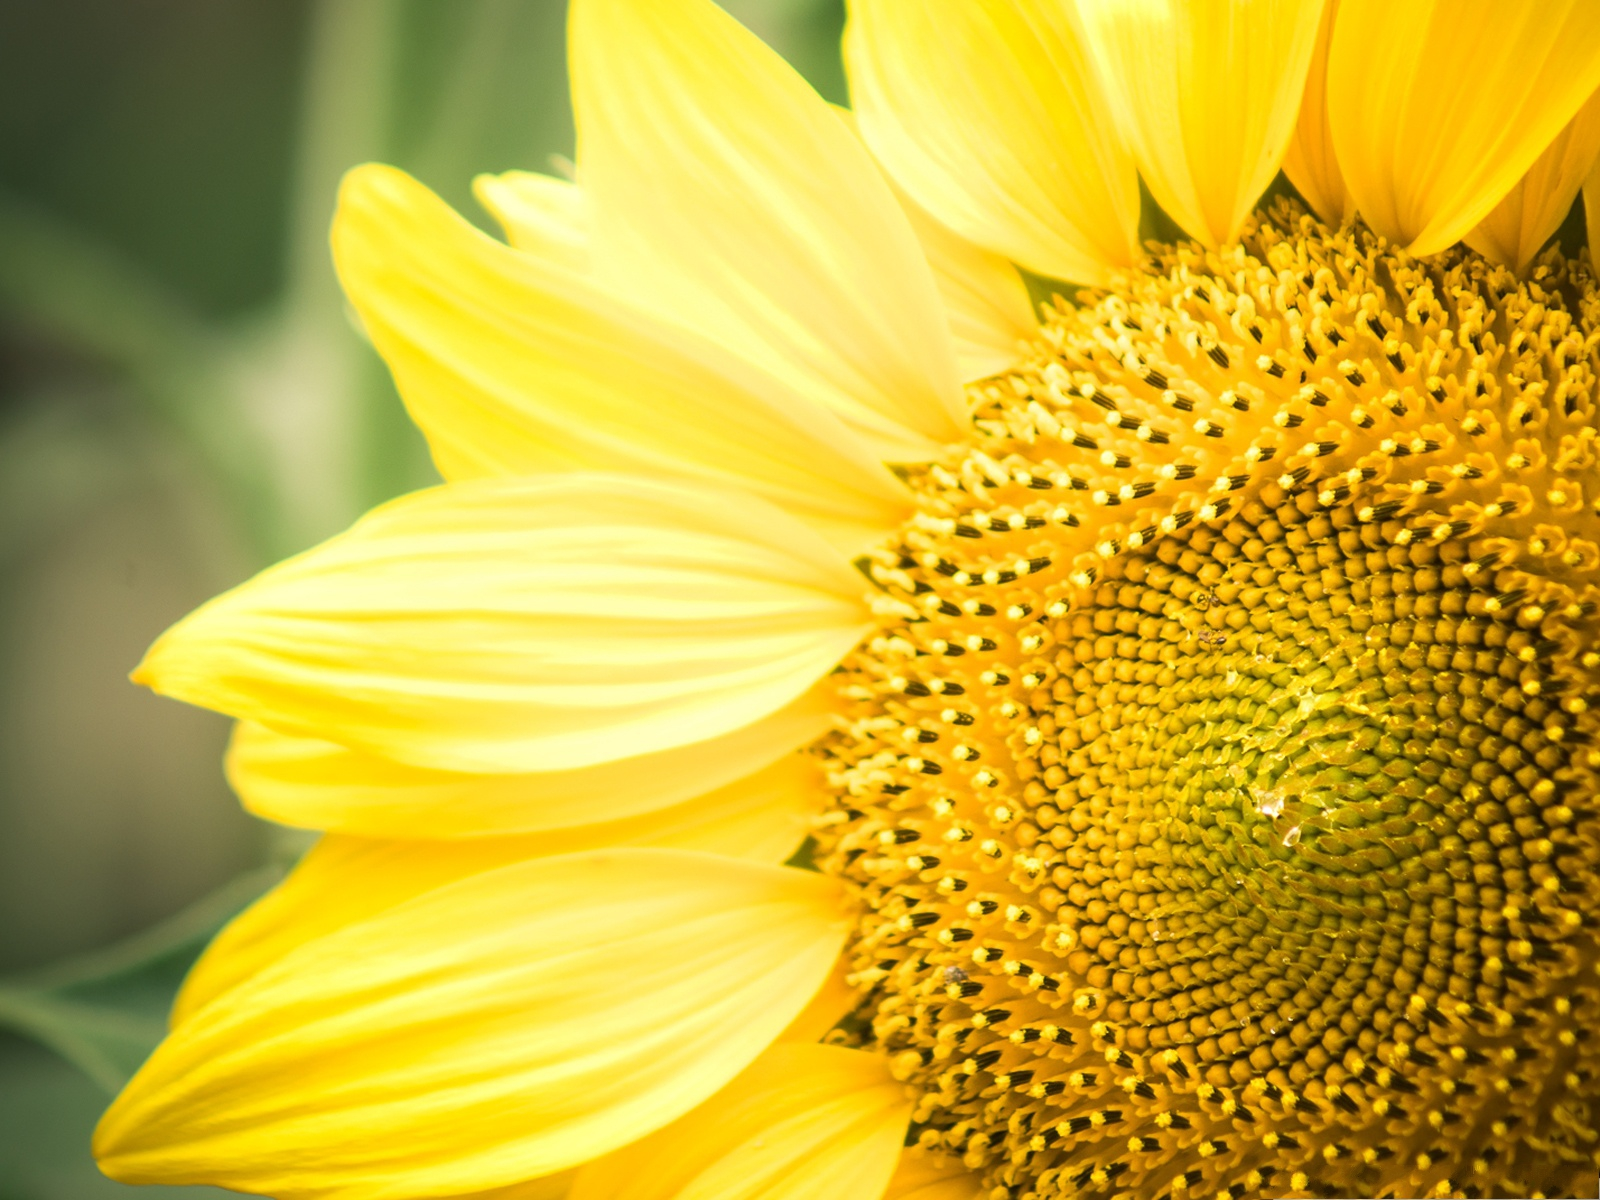 click to free download the wallpaper--Happy Sunflowers Photography, Blooming Sunflowers, Yellow Petals, Happy Smile 1600X1200 free wallpaper download